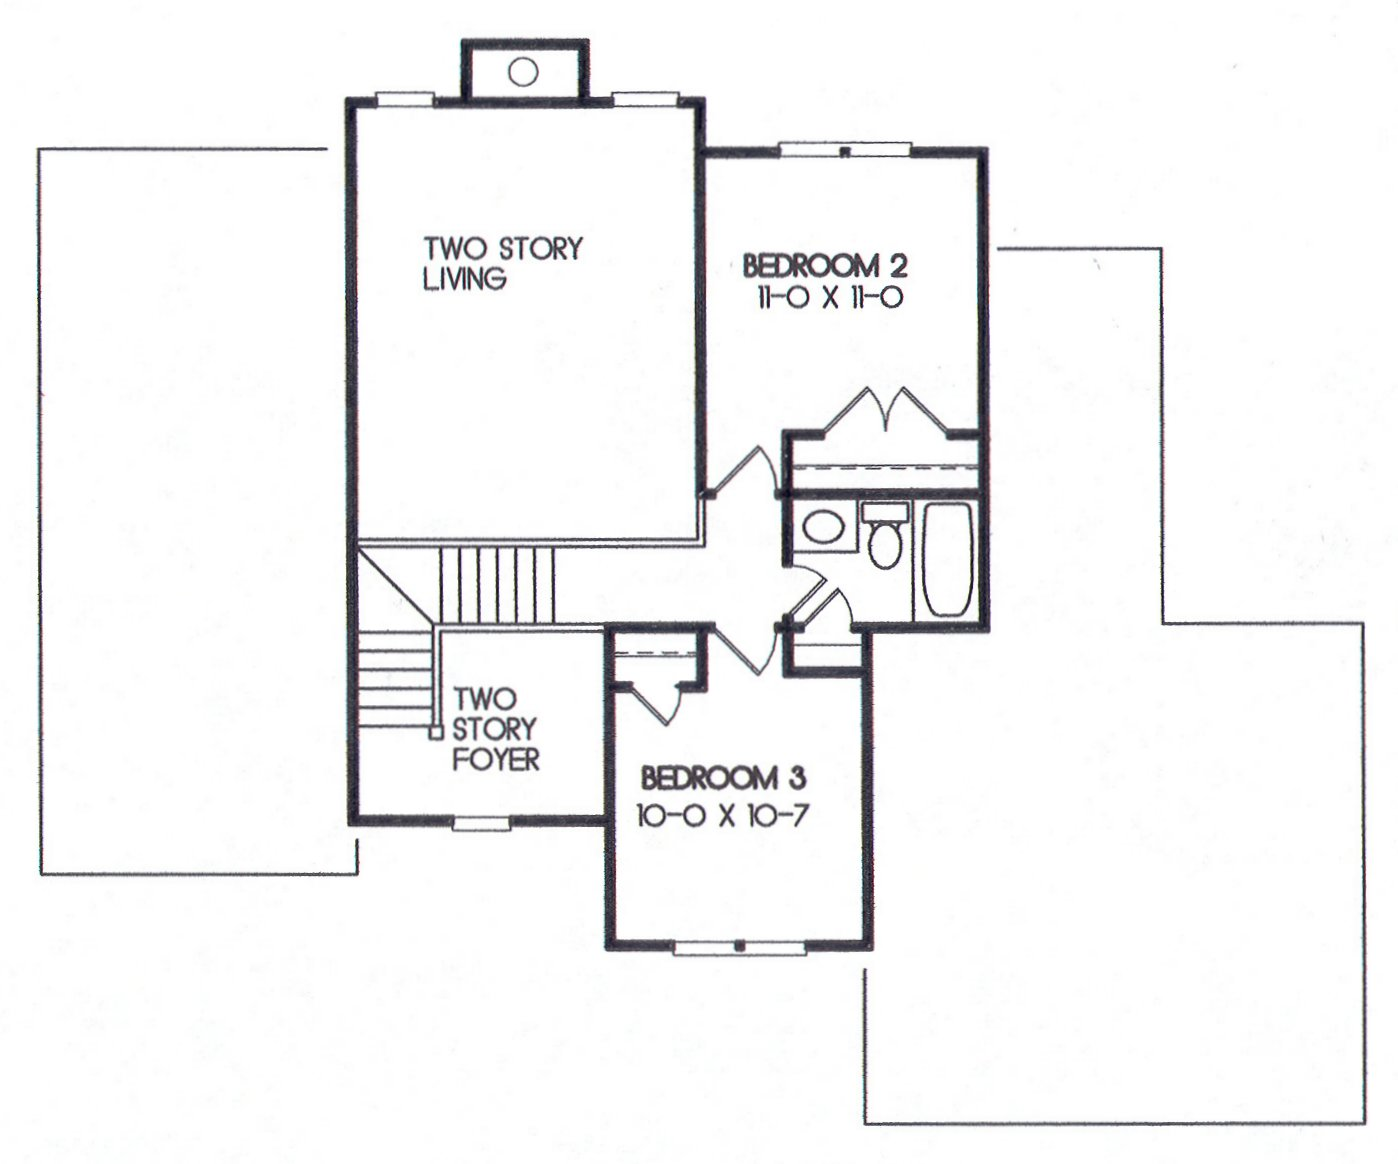 15-4 second floor